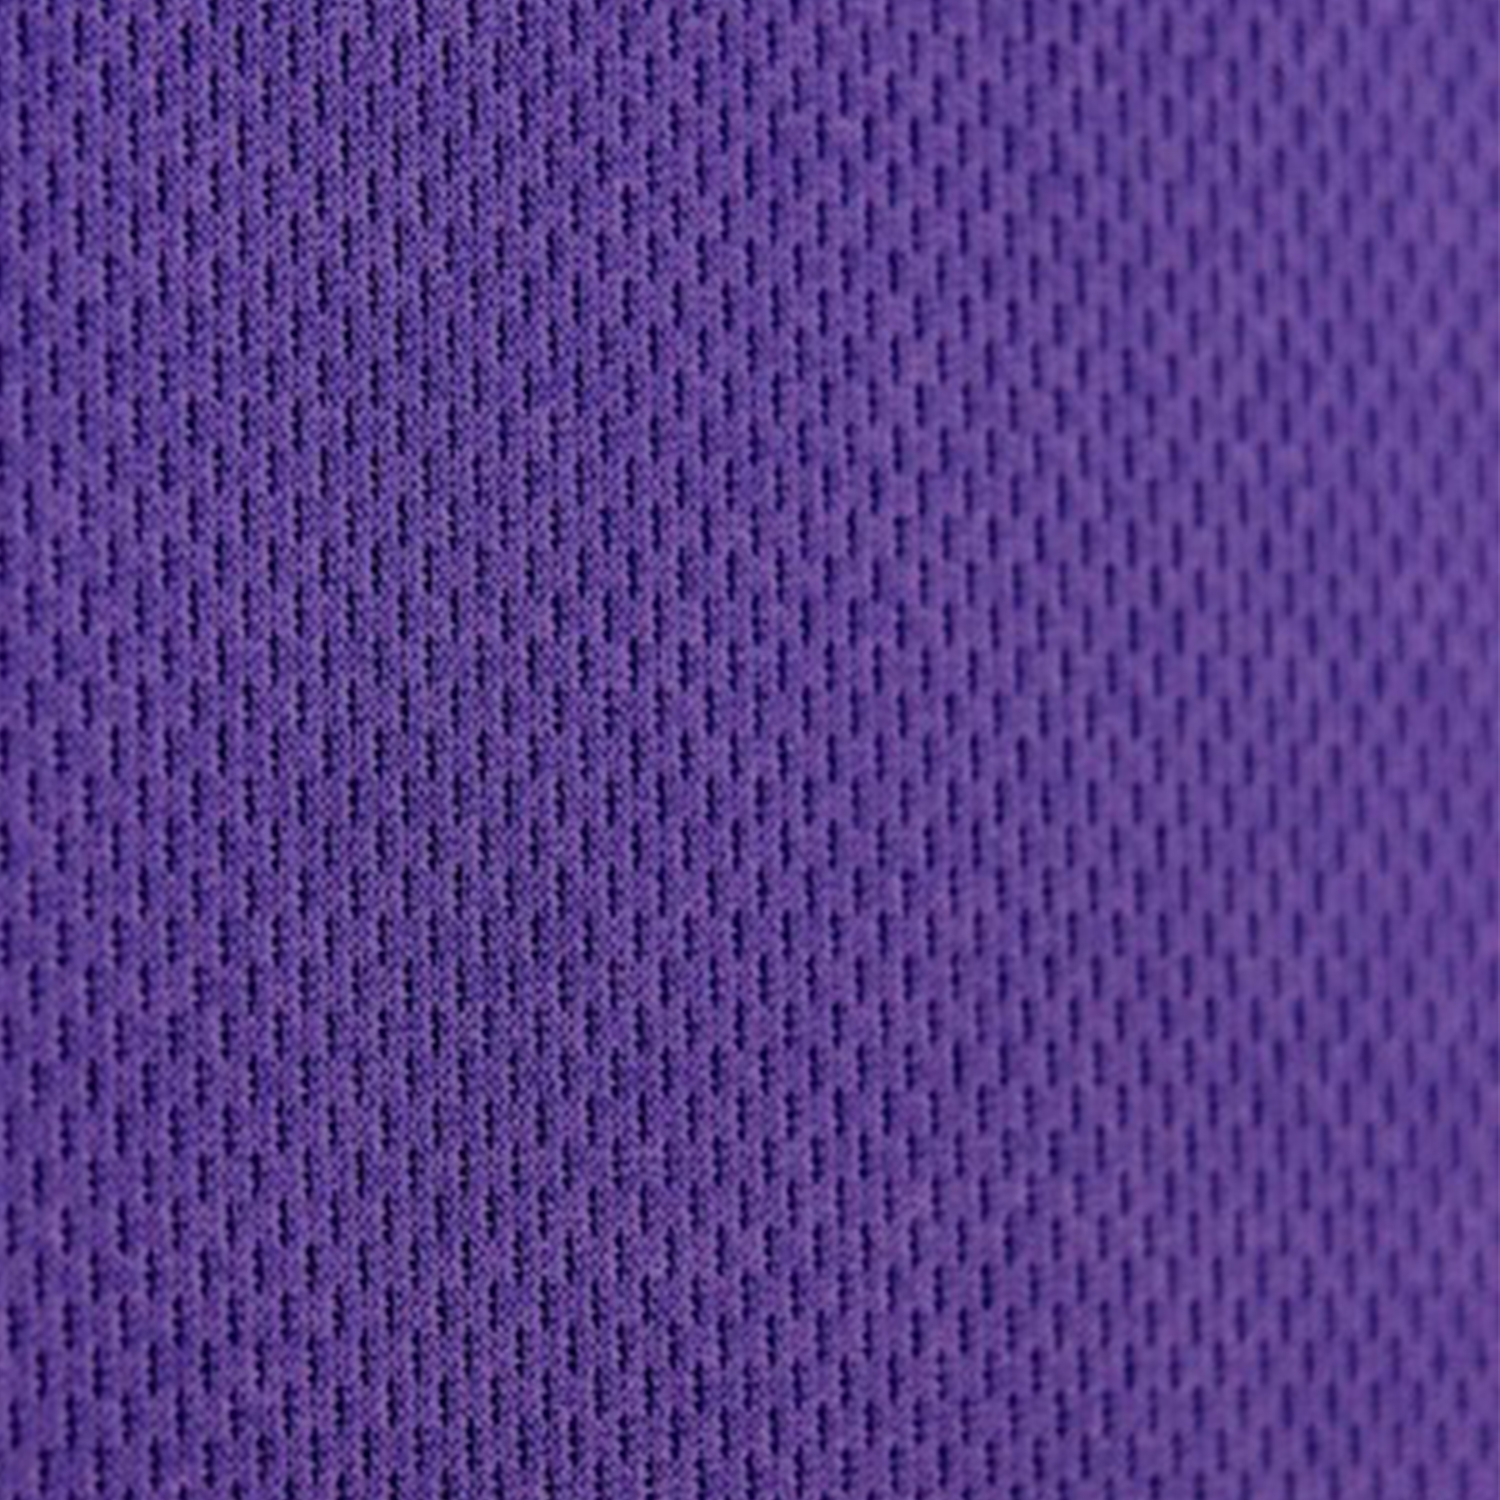 Purple Flat Back Dimple Mesh Fabric